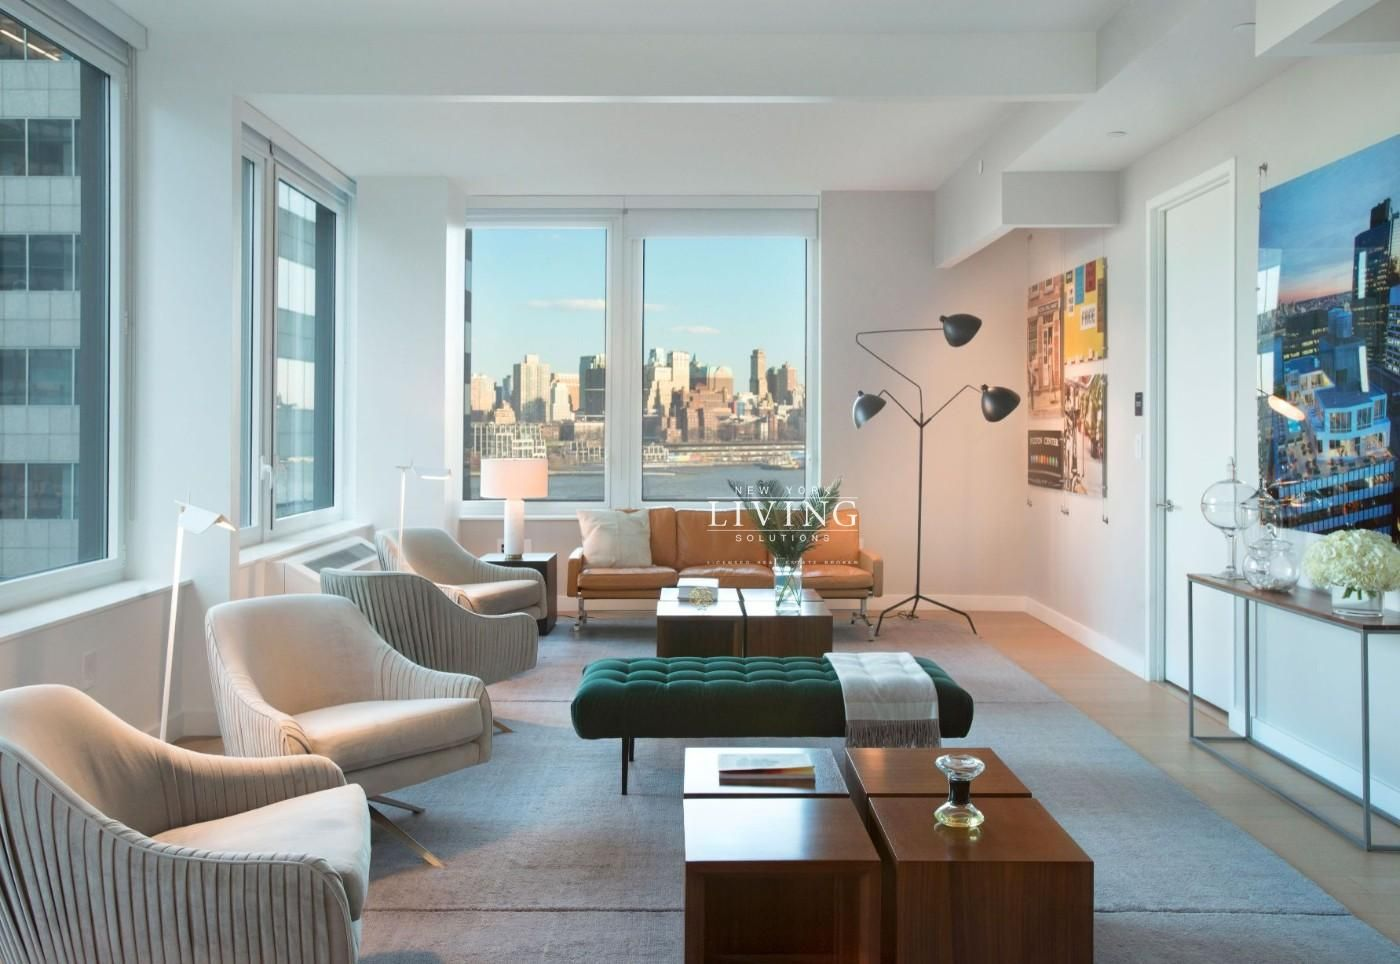 4 Bedrooms 3 Bathrooms Apartment For Sale In Financial District Apartment Apartments For Sale New York Apartments